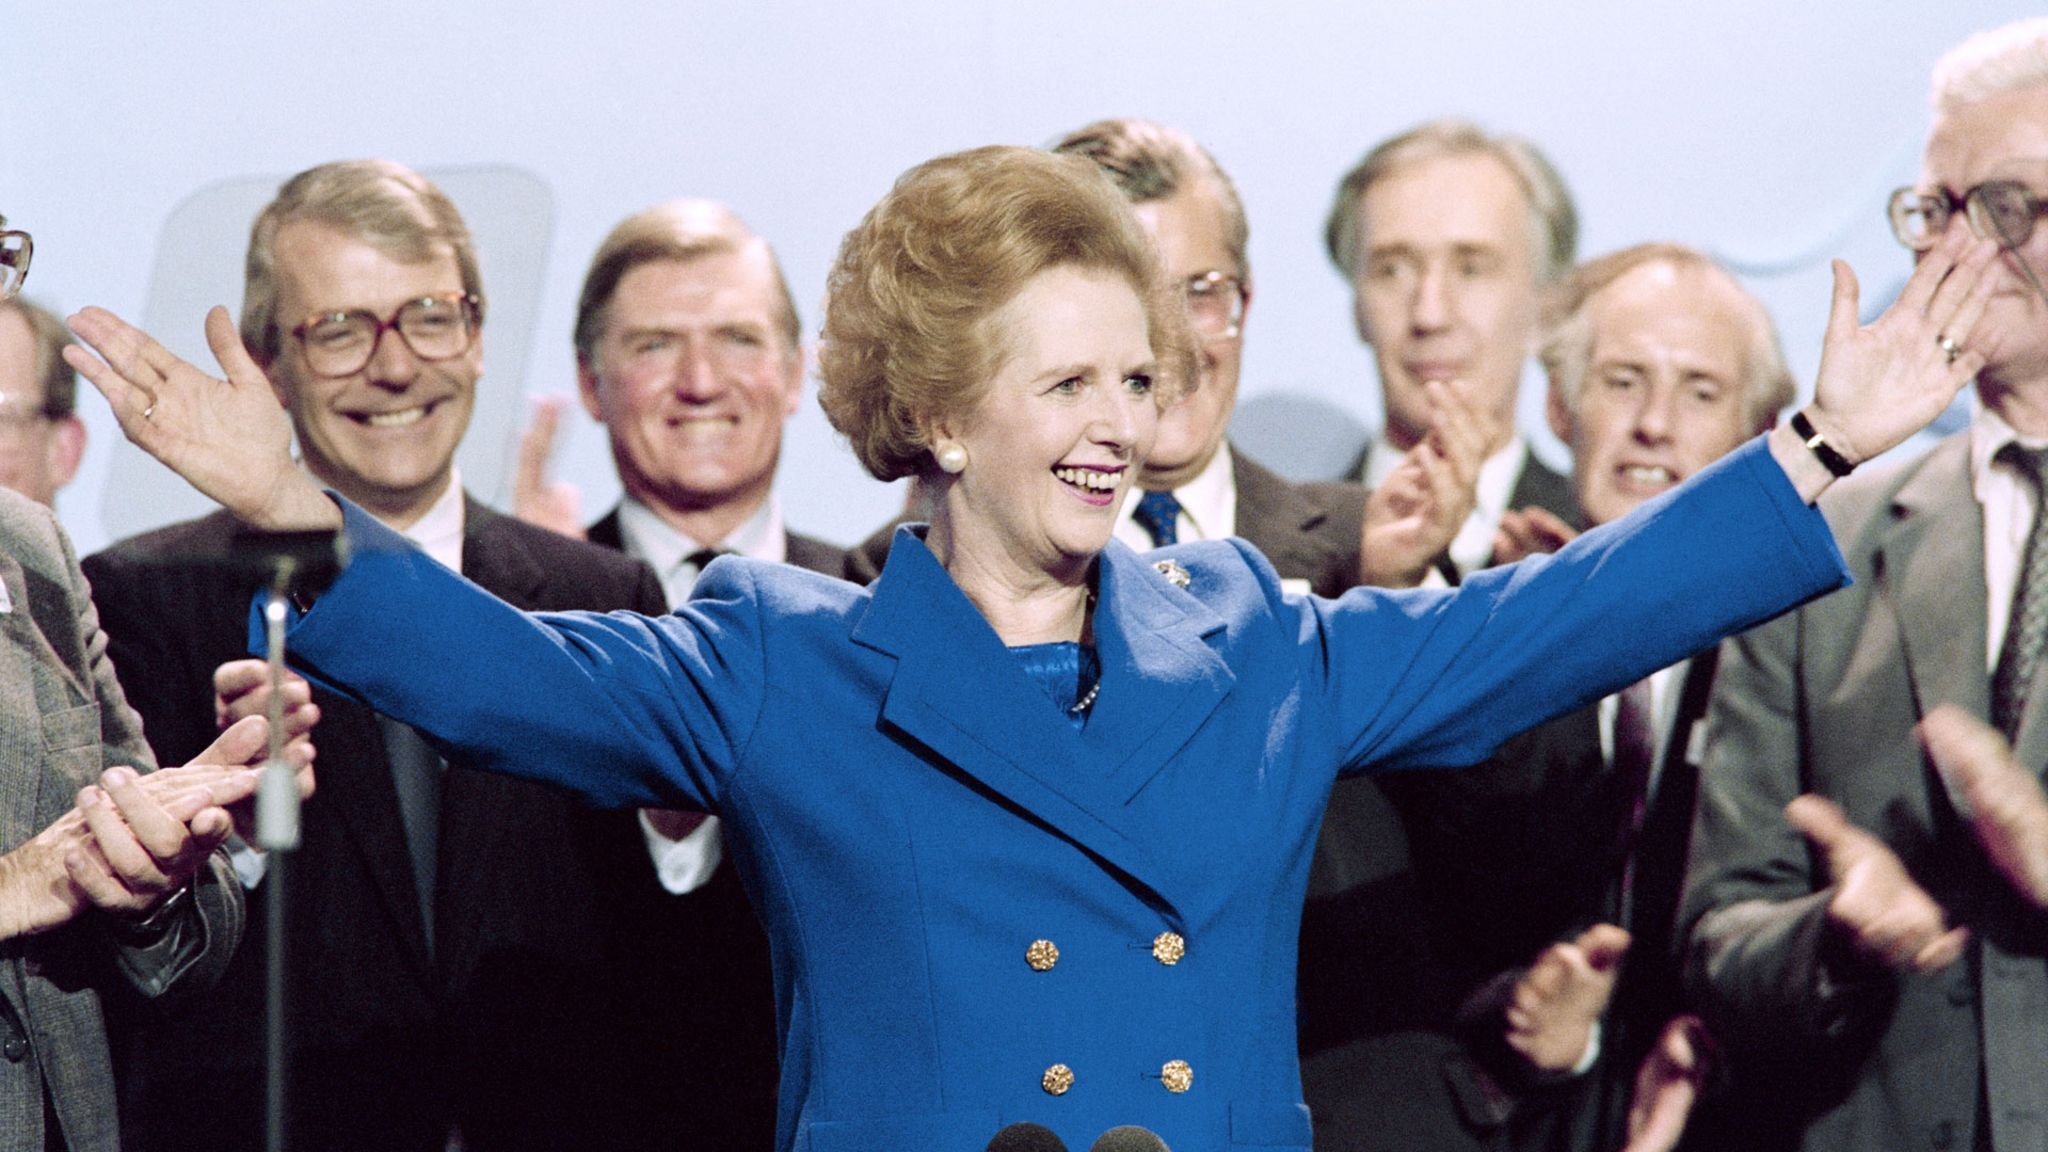 Margaret Thatcher surrounded by male colleagues at the 1989 party conferences